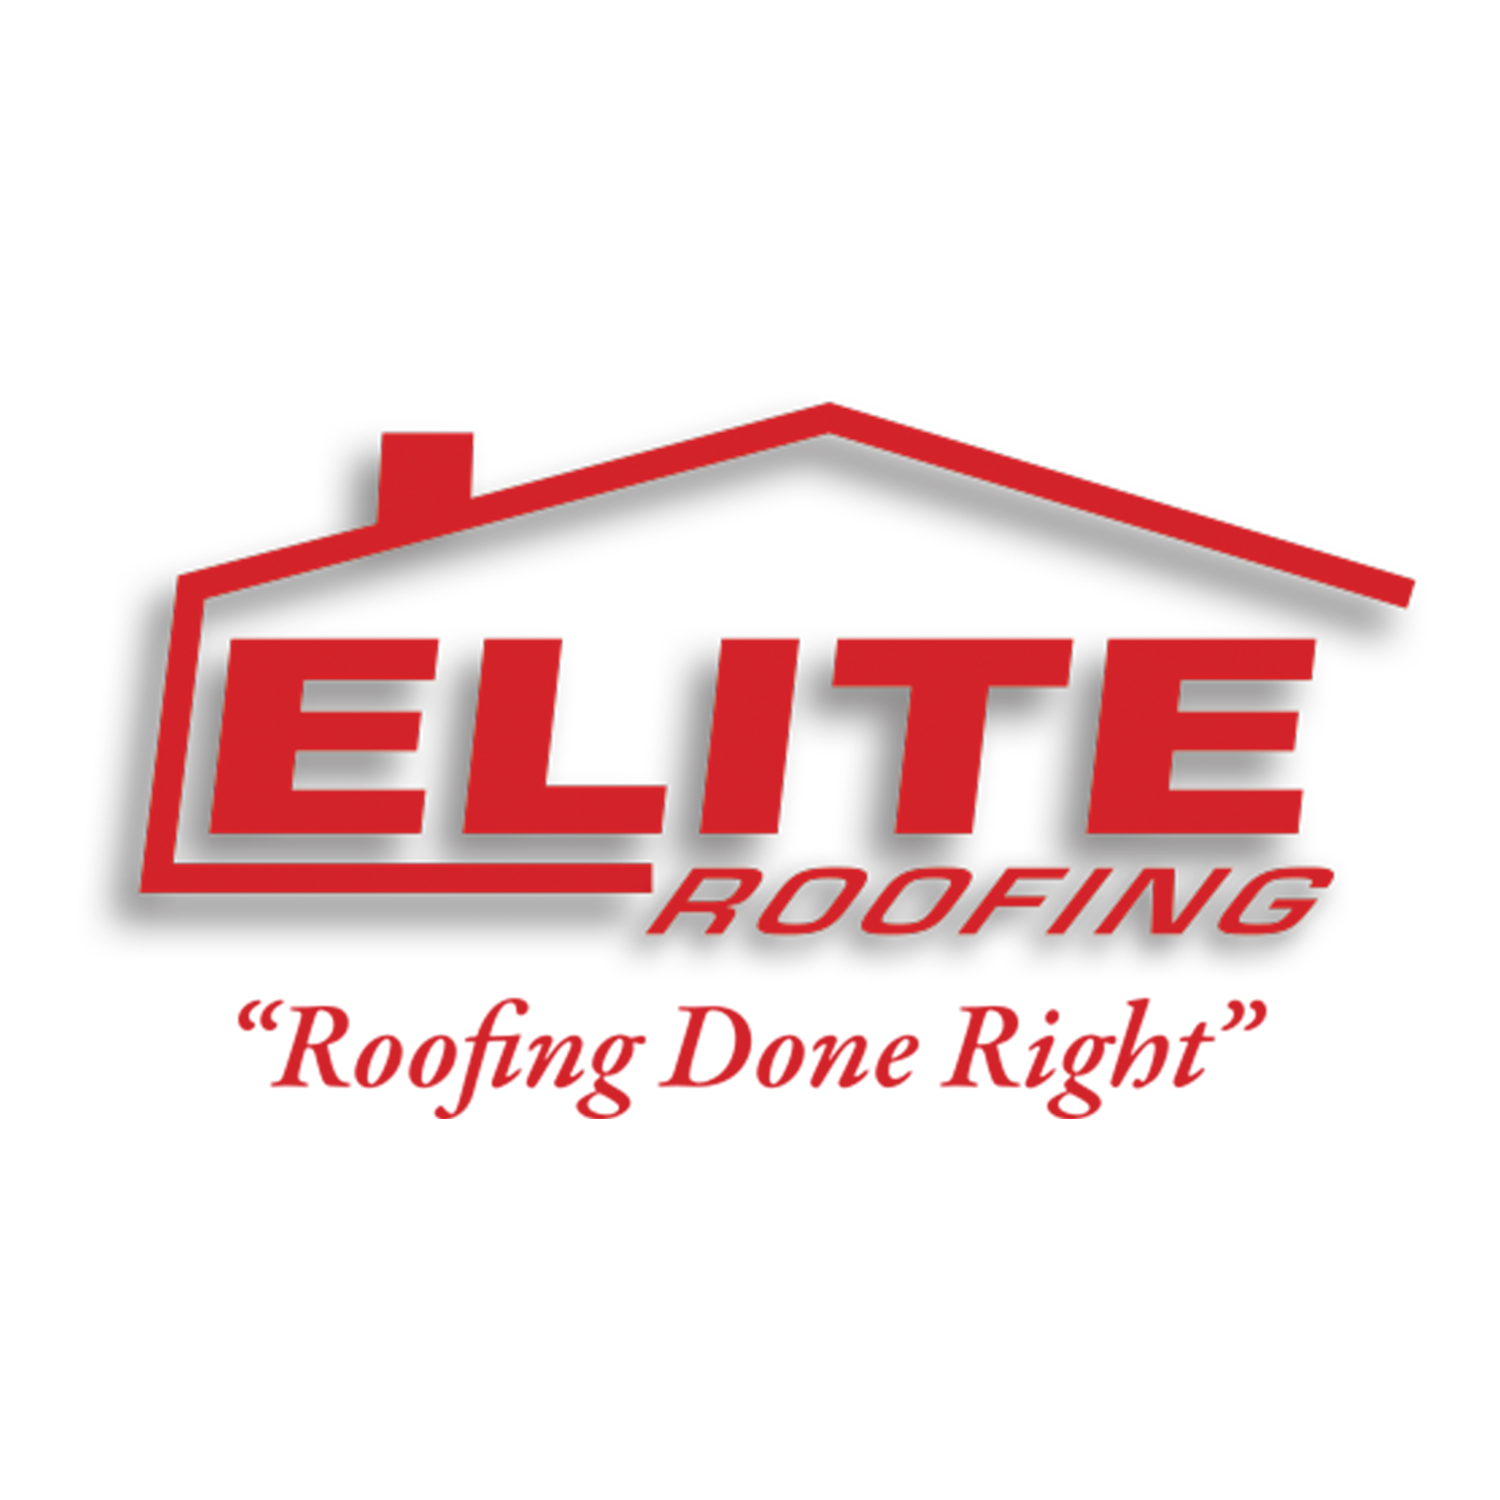 Your Residential Roofing And Commercial Roofing Company: Elite Roofing